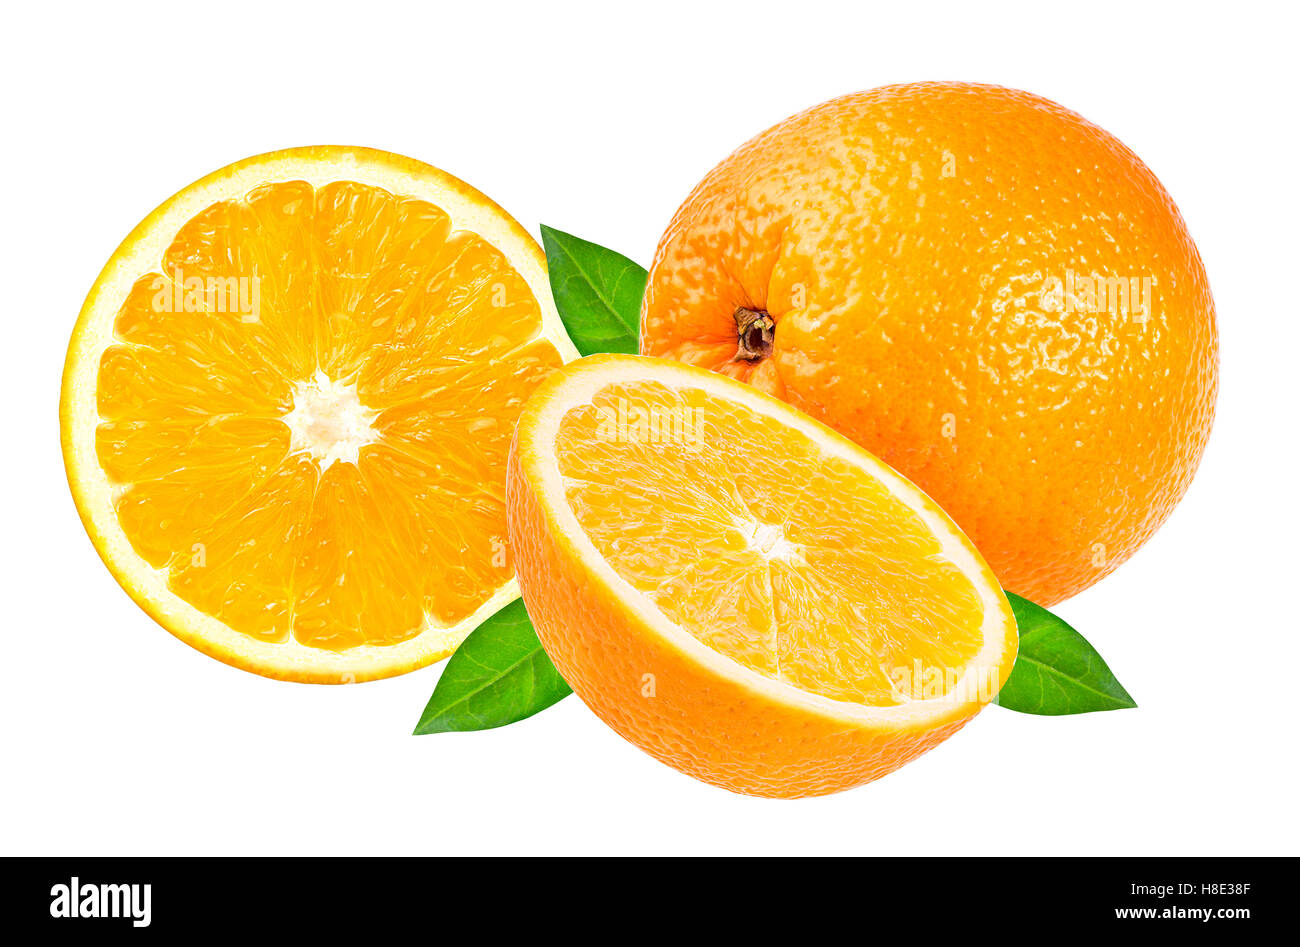 oranges isolated on the white background - Stock Image